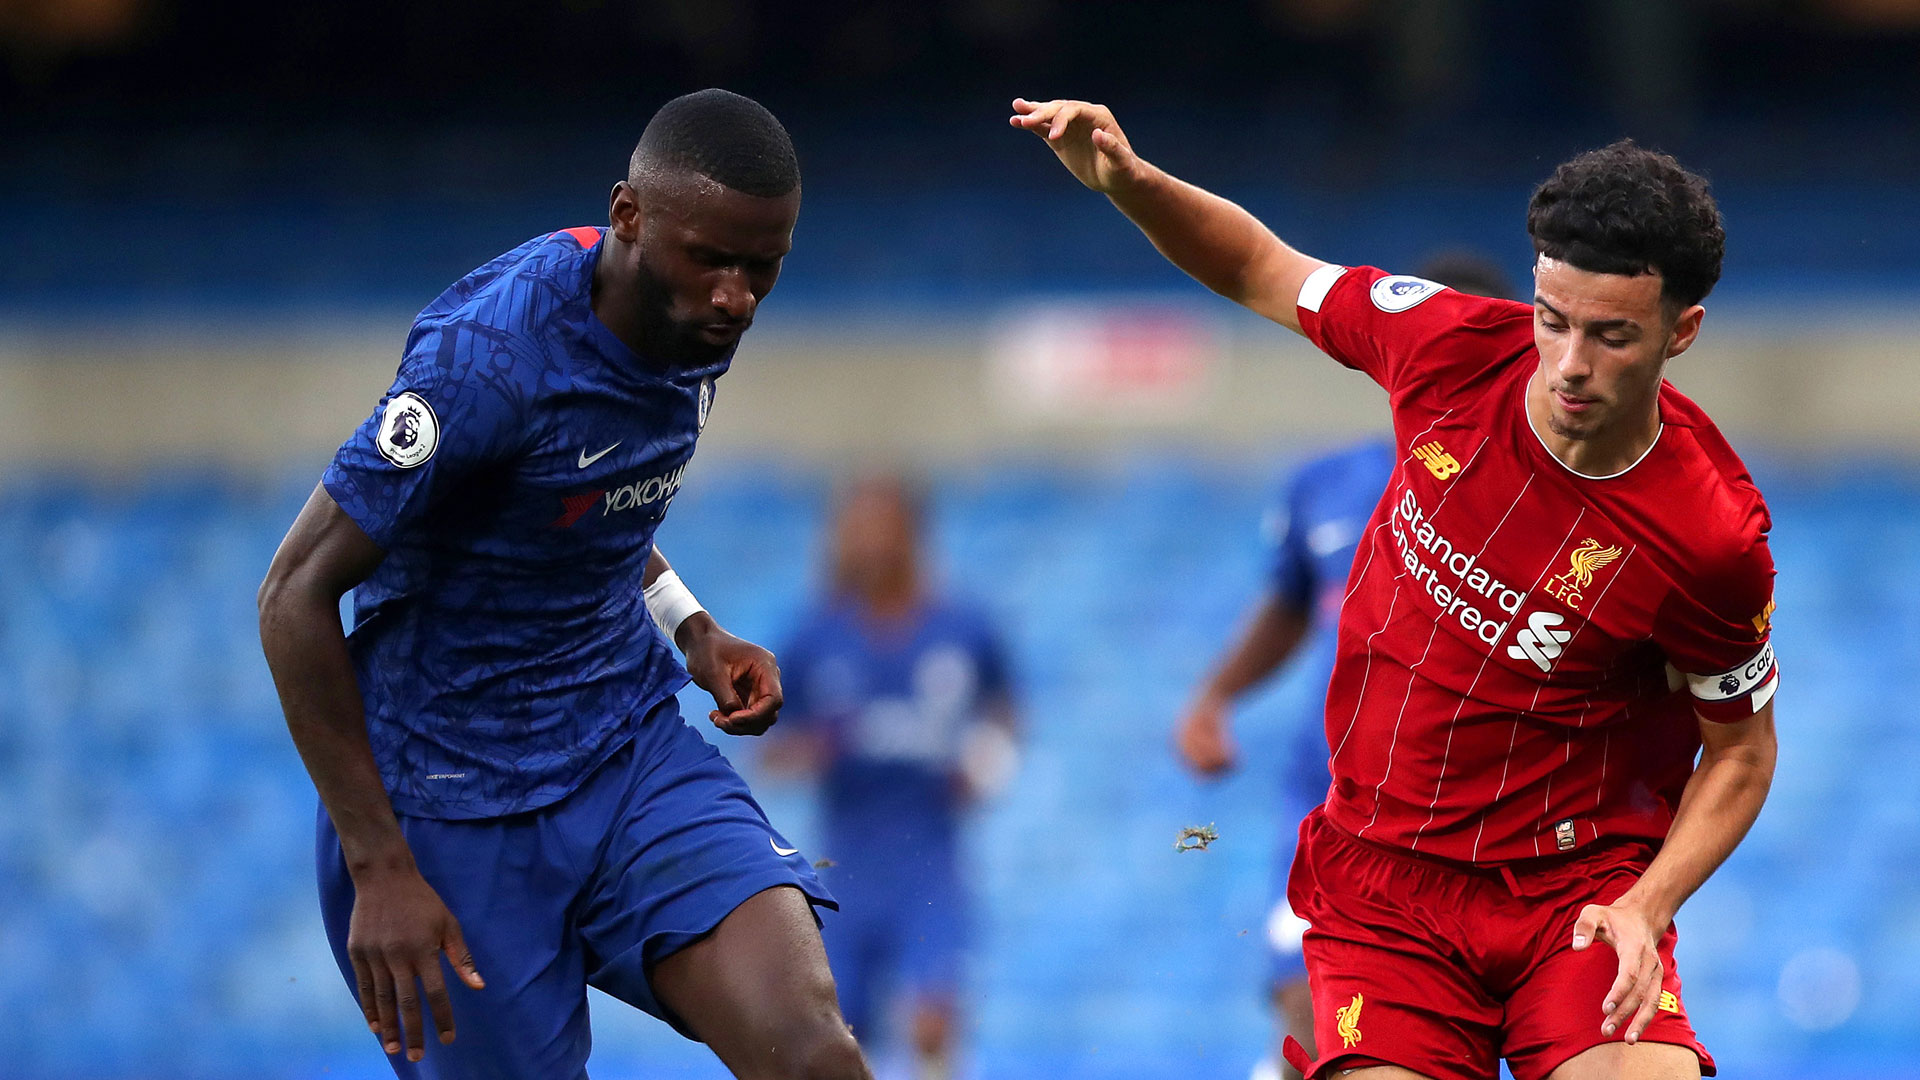 Chelsea boss Lampard declares Rudiger ready for Lille